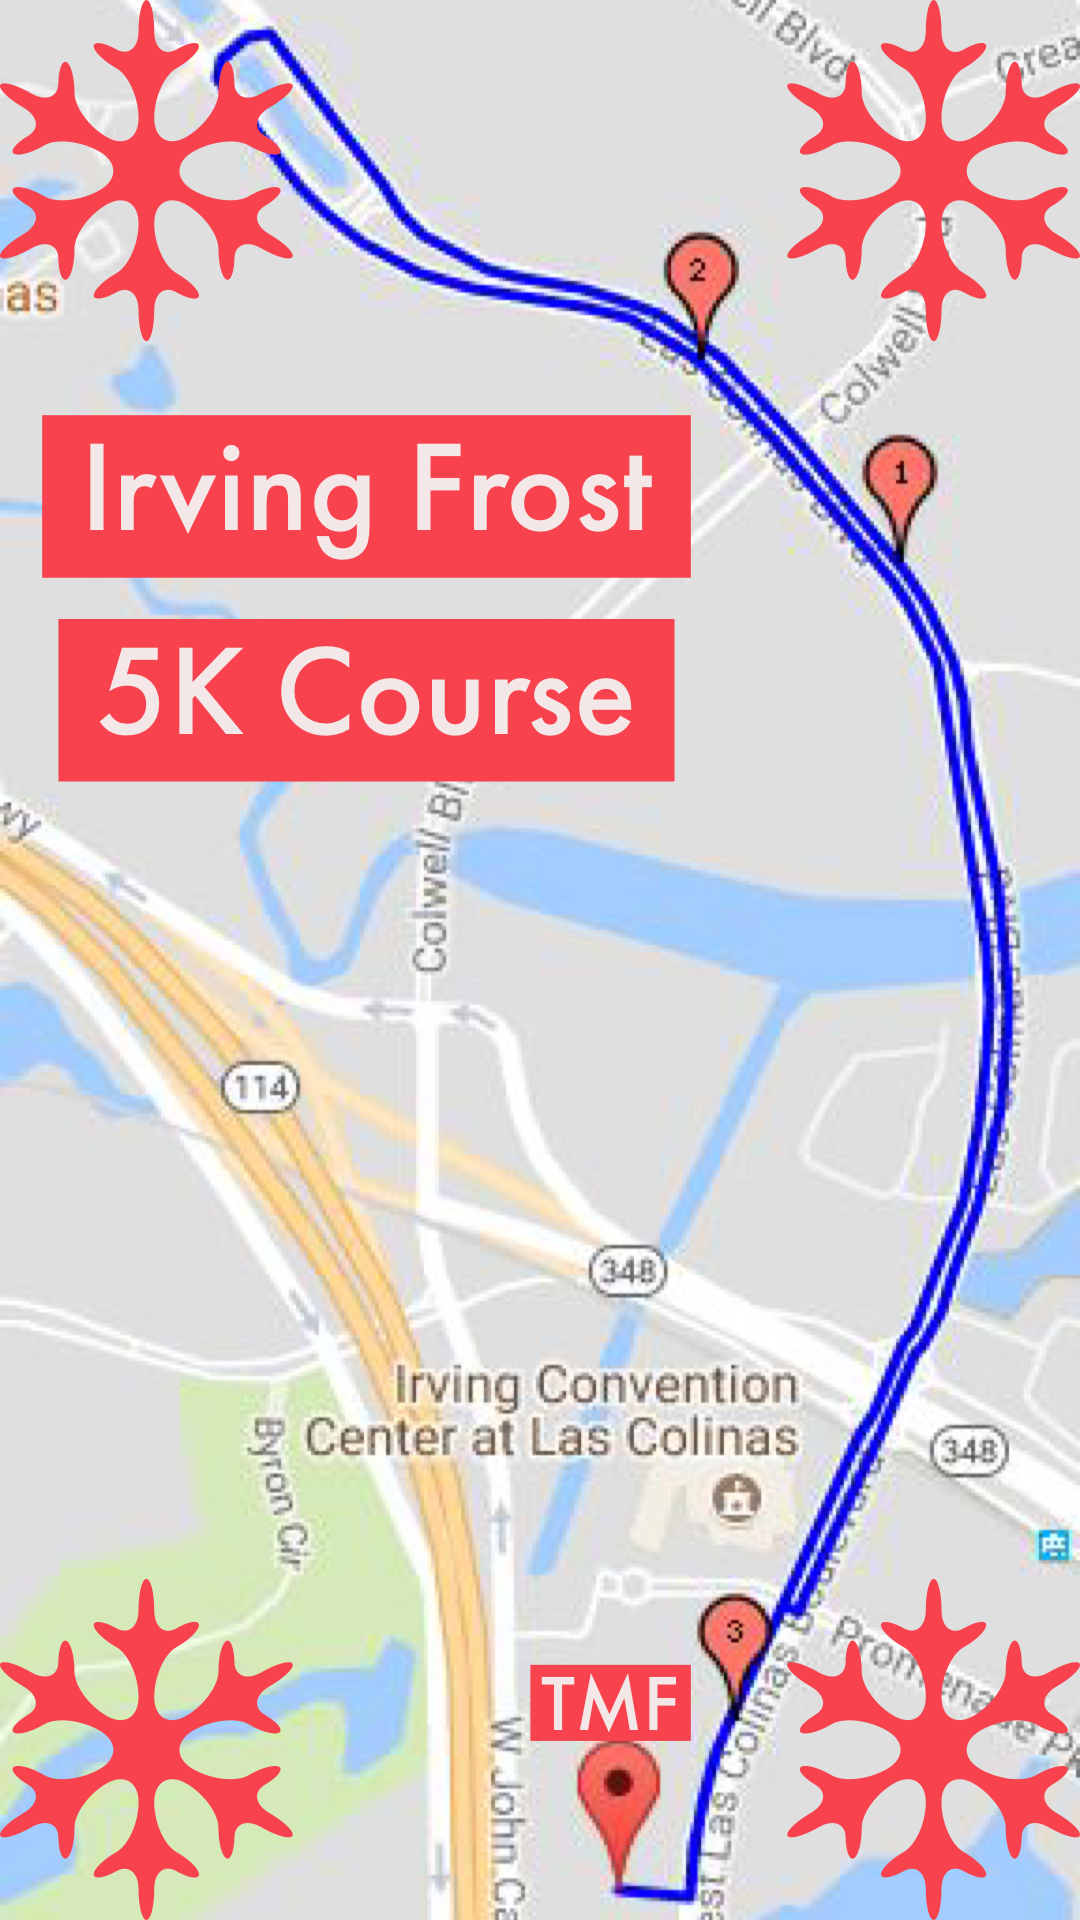 USATF Certified Irving Frost 5K Course - The Flat course takes you out of Toyota Music Factory through the Convention Center along scenic Las Colinas Boulevard then back to Toyota Music Factory where a fun post race party at America's #1 concert venue awaits.